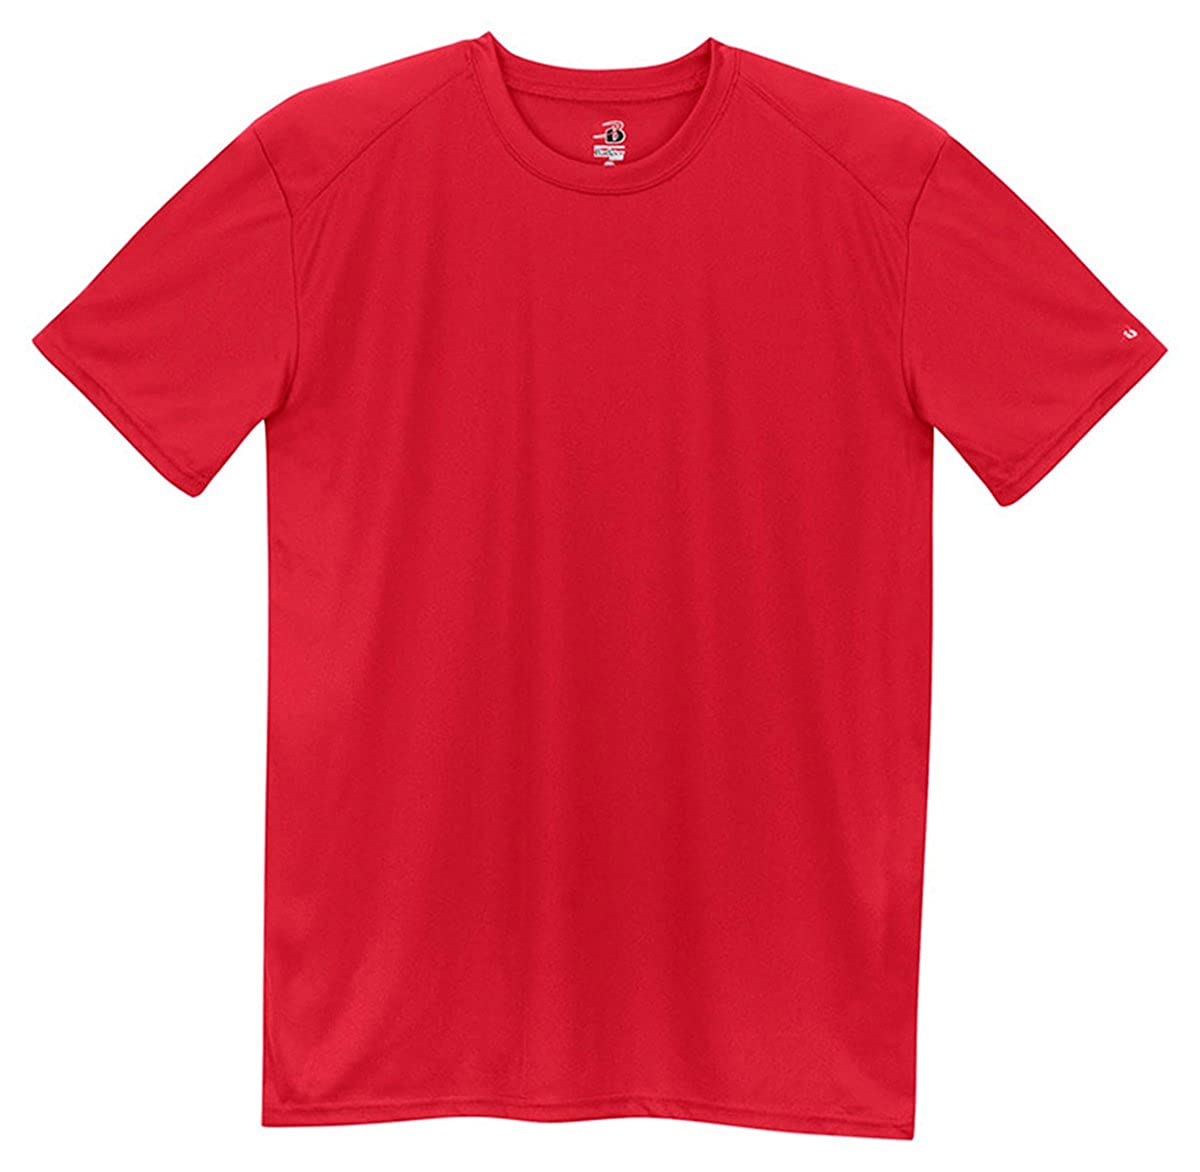 Badger 2120 B-Core Youth Short Sleeve T-Shirt